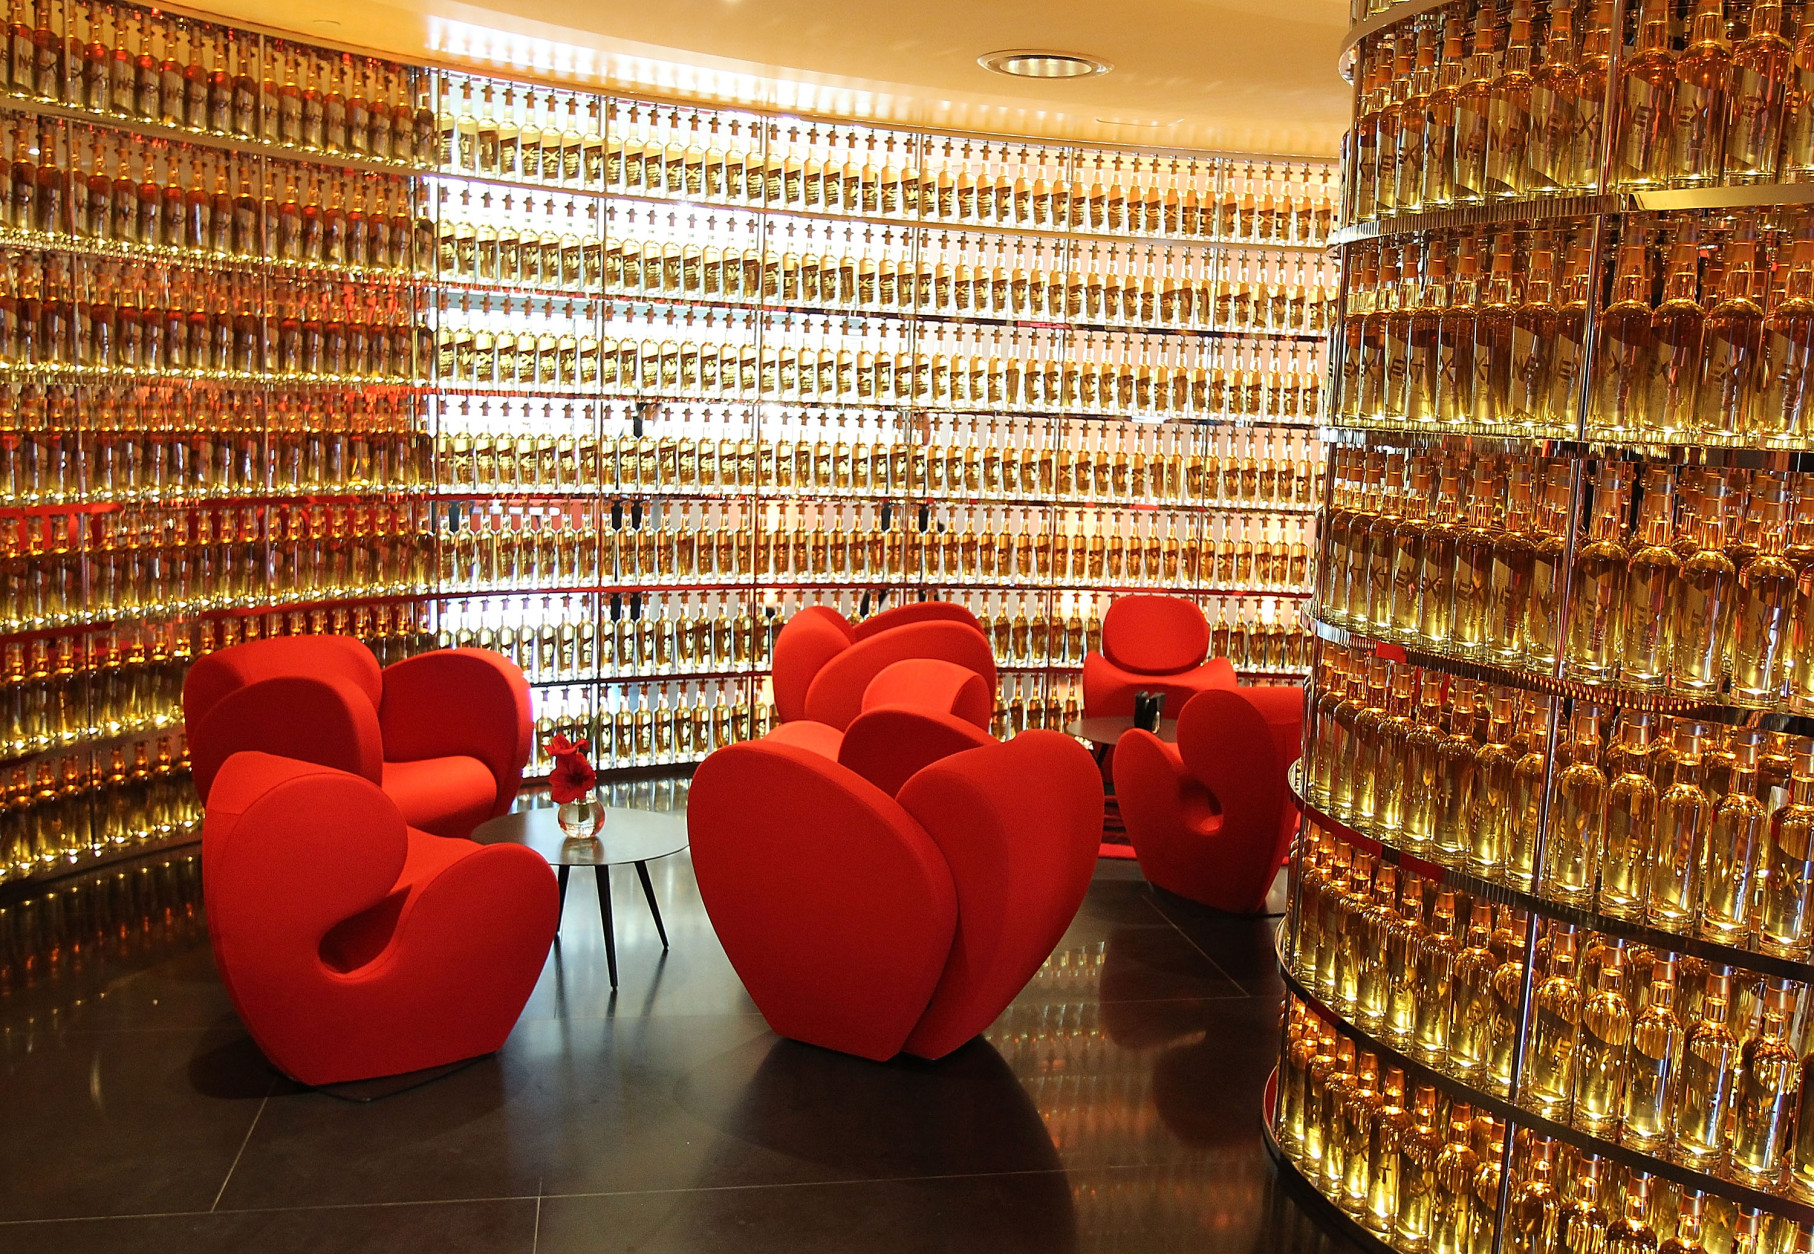 WASHINGTON, DC - JUNE 14:  The Next Whisky Bar opens at the iconic Watergate Hotel on June 14, 2016 in Washington, DC.  (Photo by Paul Morigi/Getty Images for The Watergate Hotel)